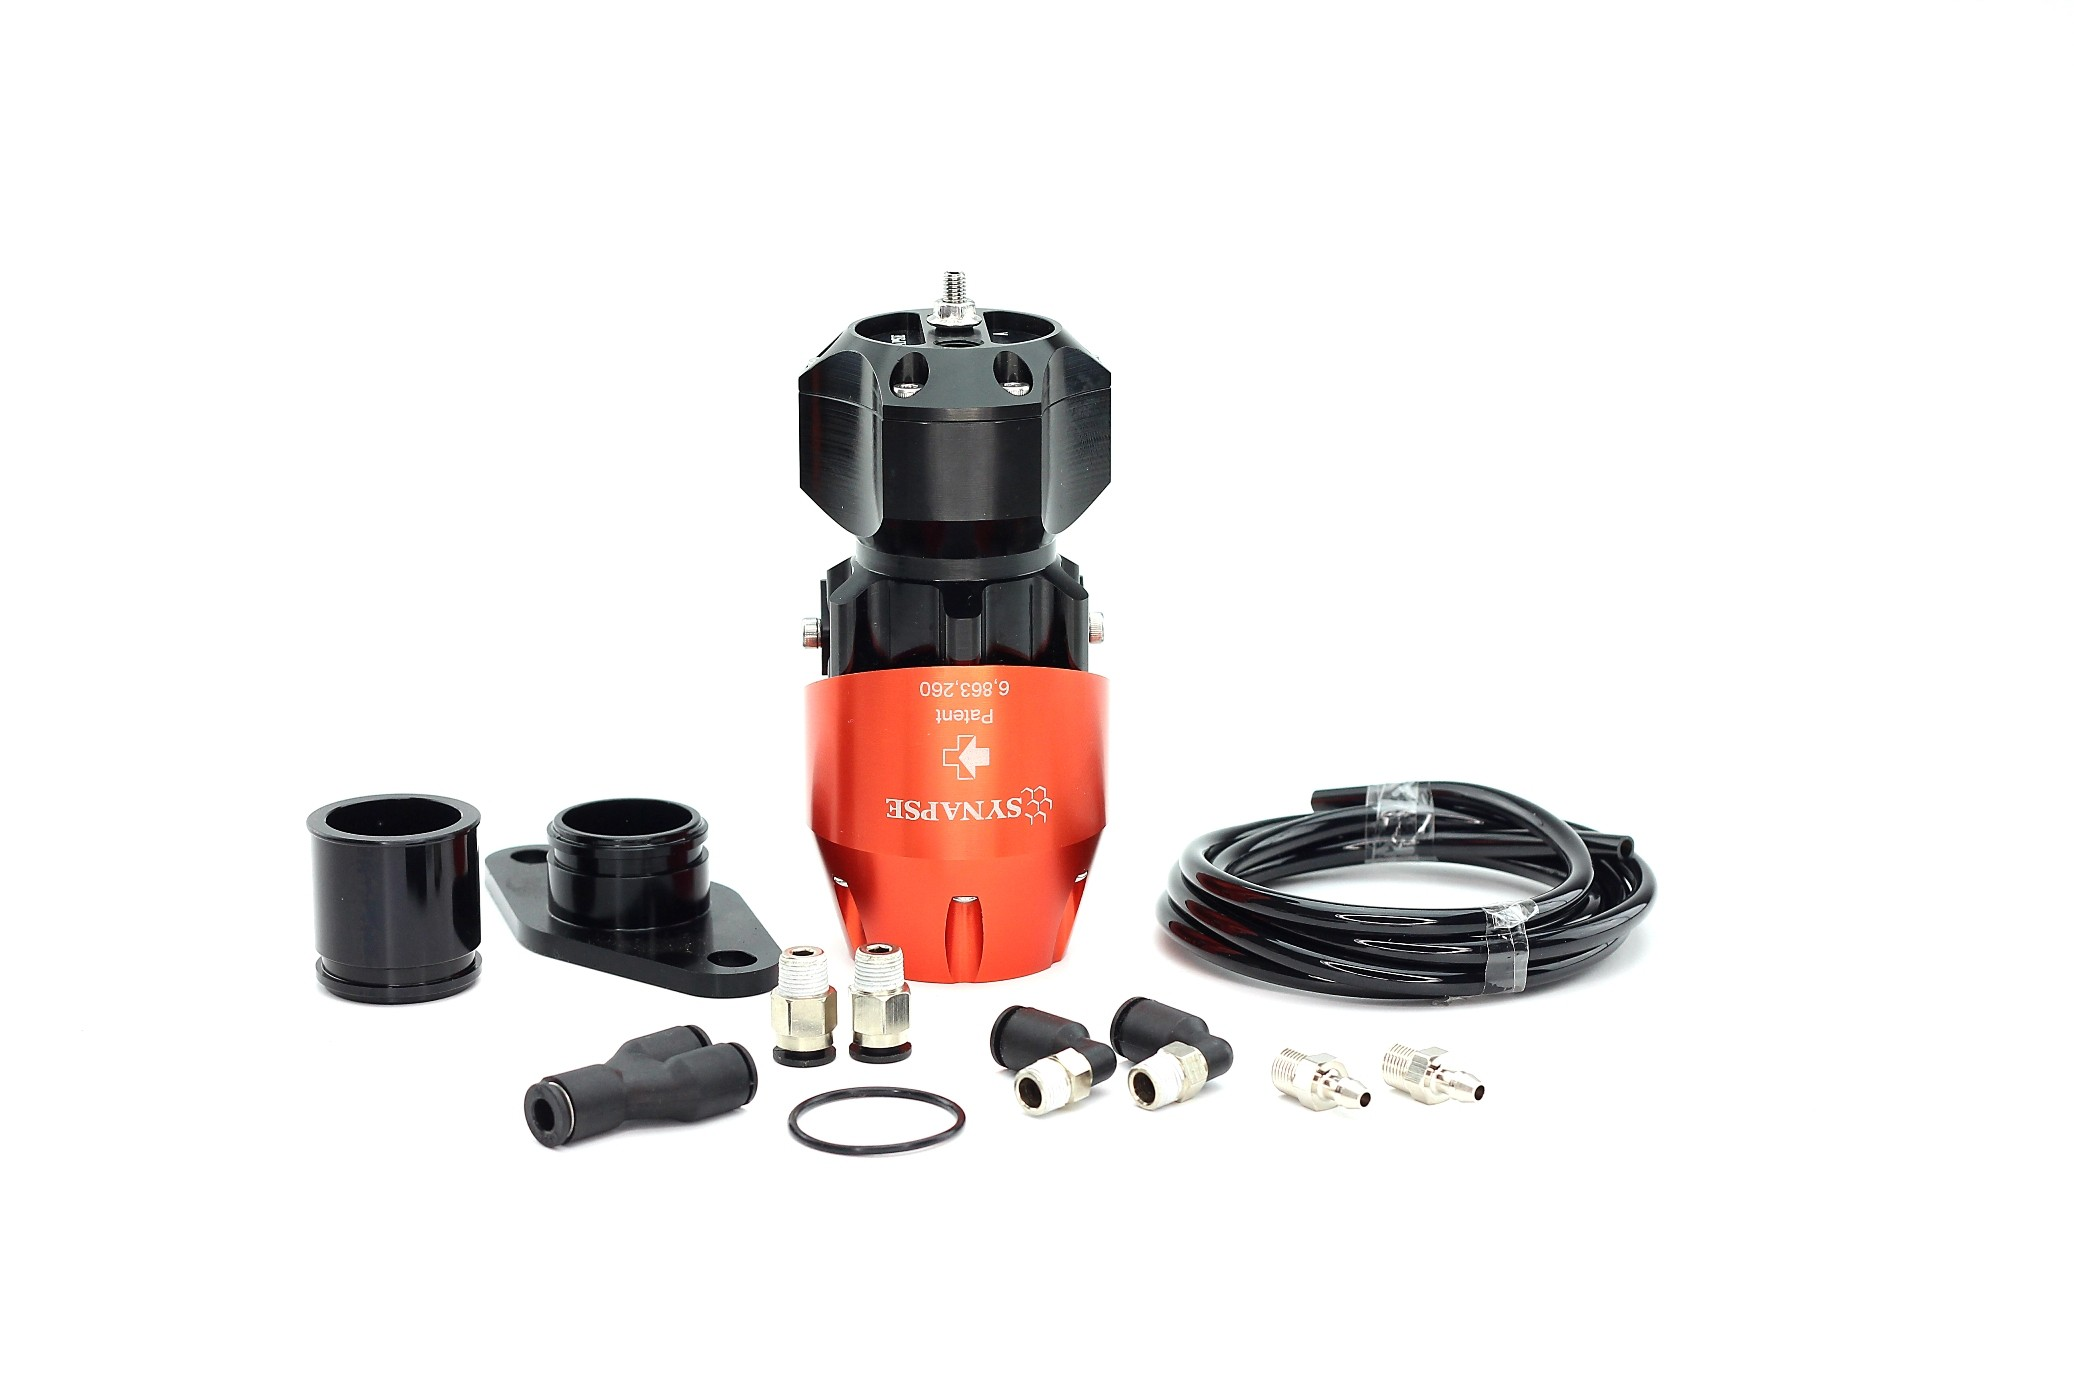 Mitsubishi Eclipse GST/GSX 1990-1994, Evo 5 and Eagle Talon TSi 1990-1994 Synchronic BOV Kit Orange/Black BOV